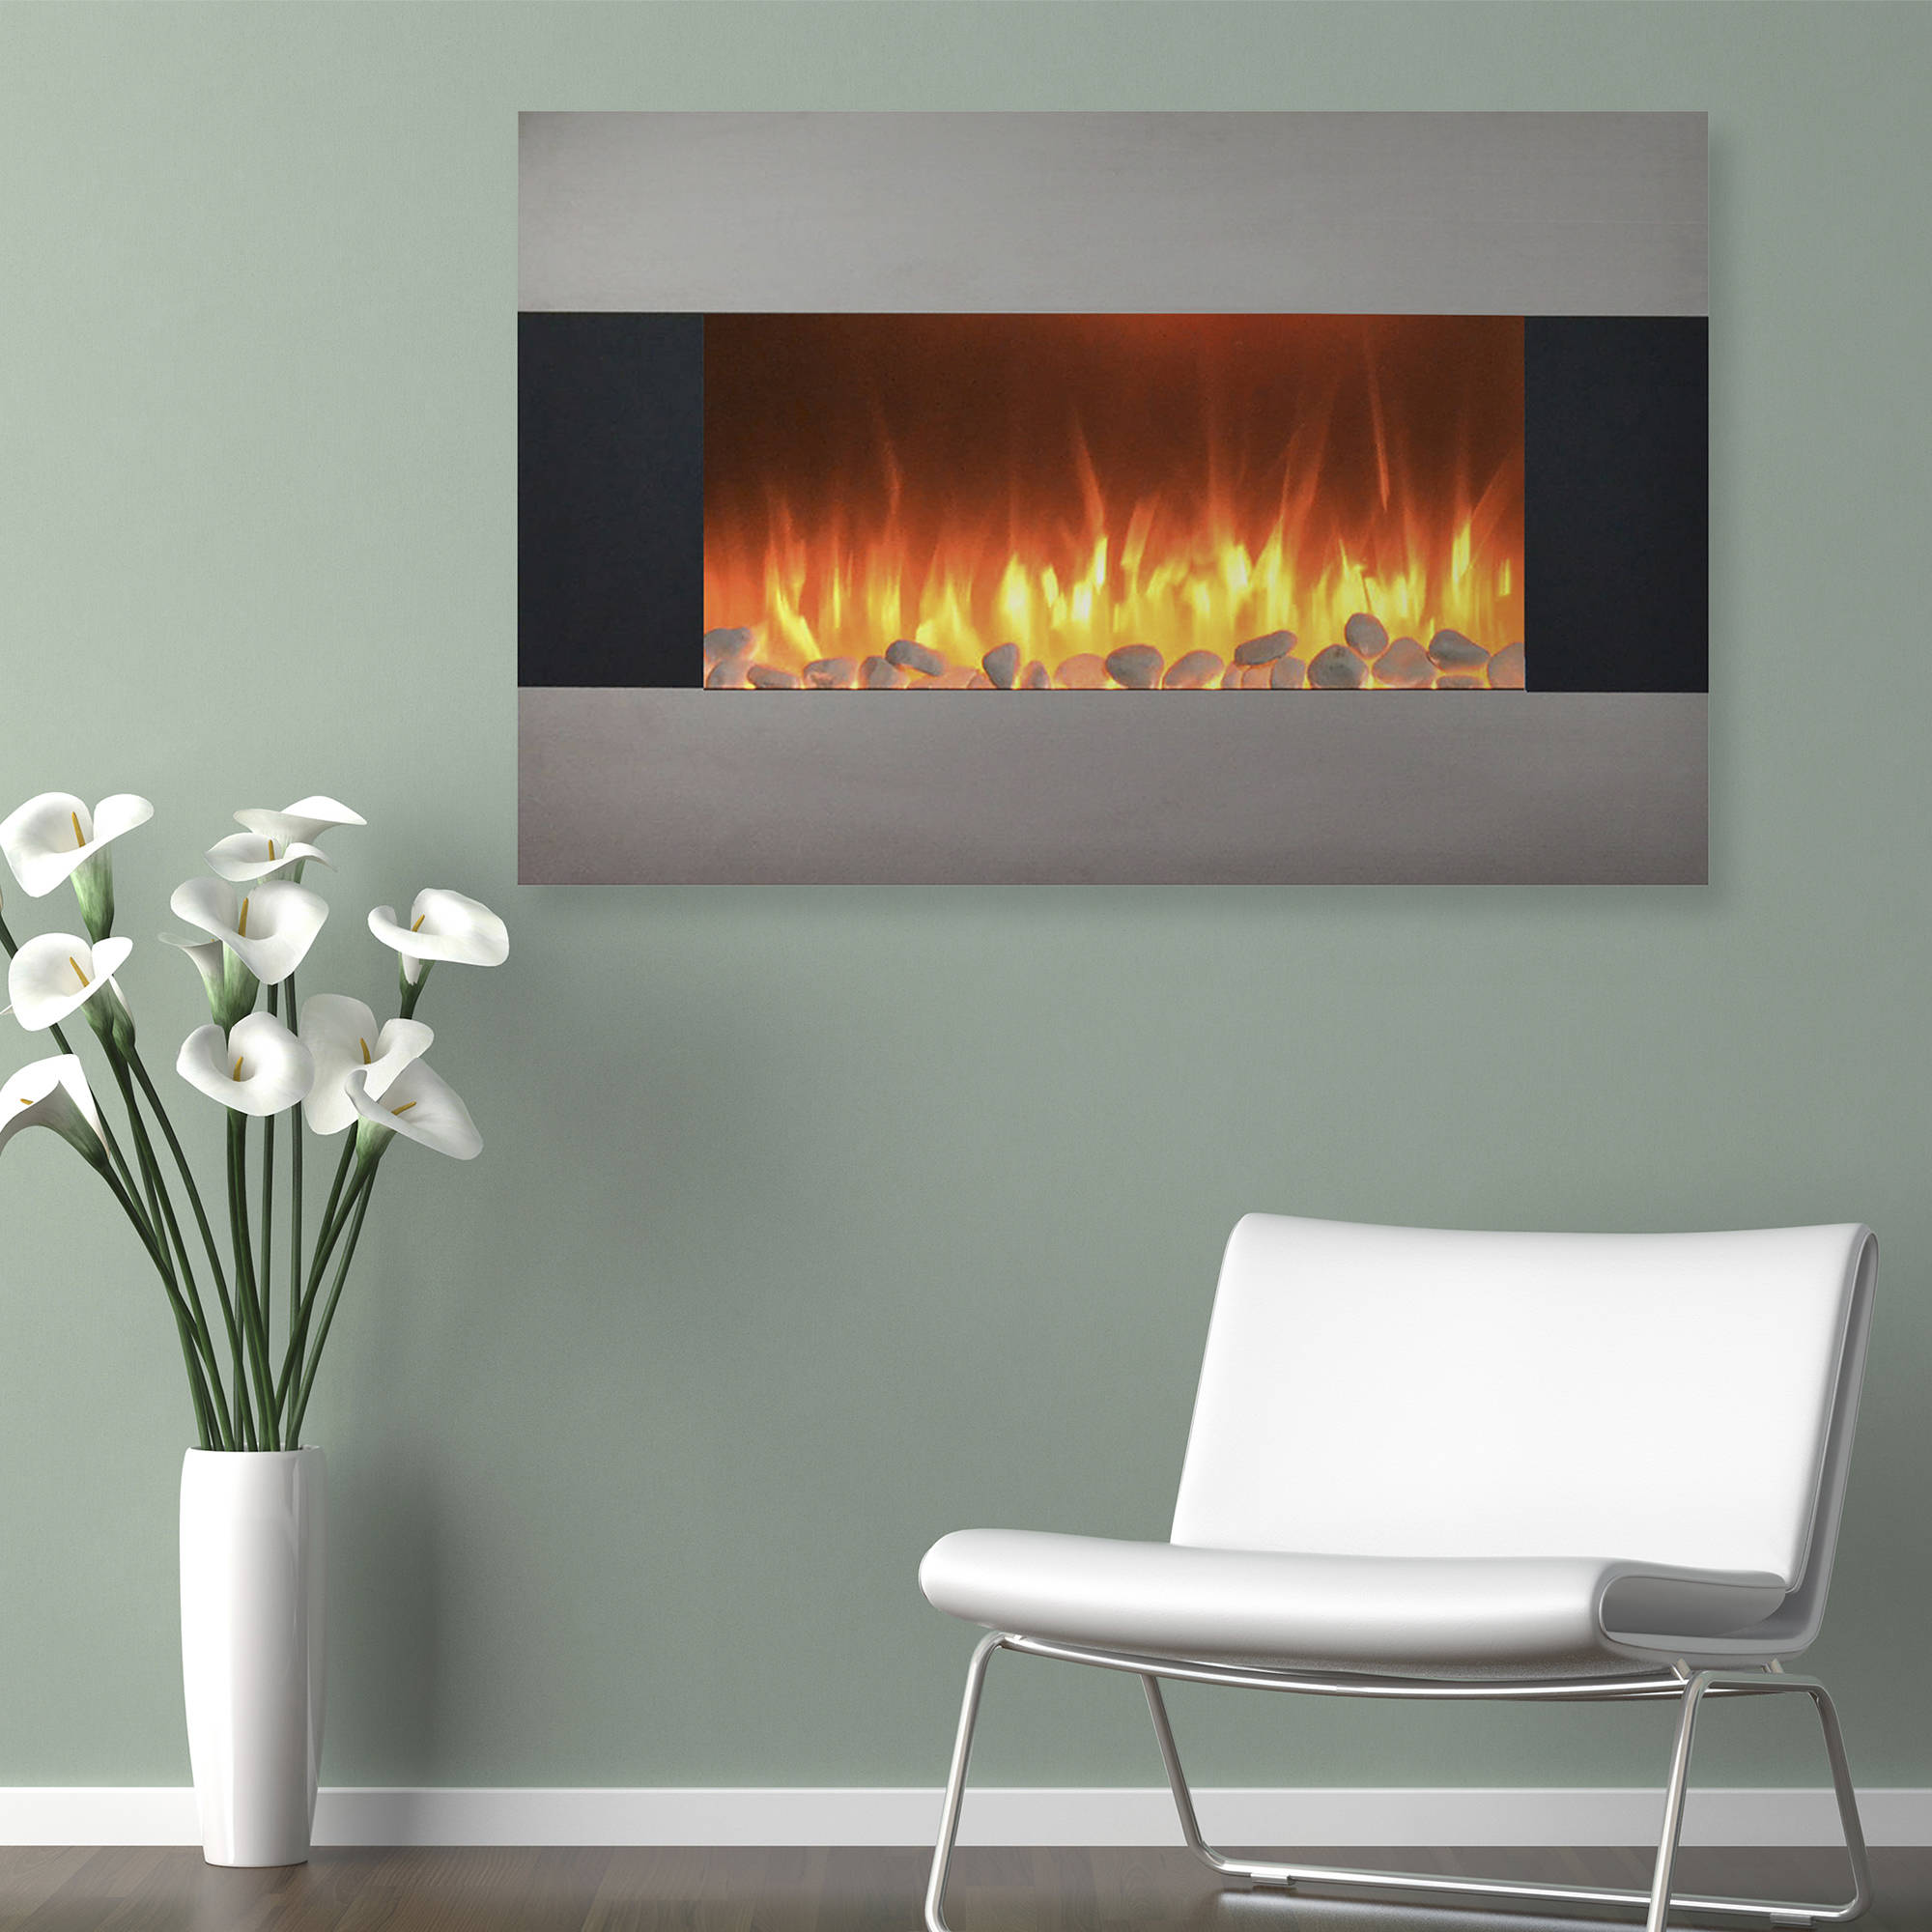 Wall Mount Fireplaces Stainless Steel Electric Fireplace With Wall Mount And Floor Stand And Remote 36 Inch By Northwest